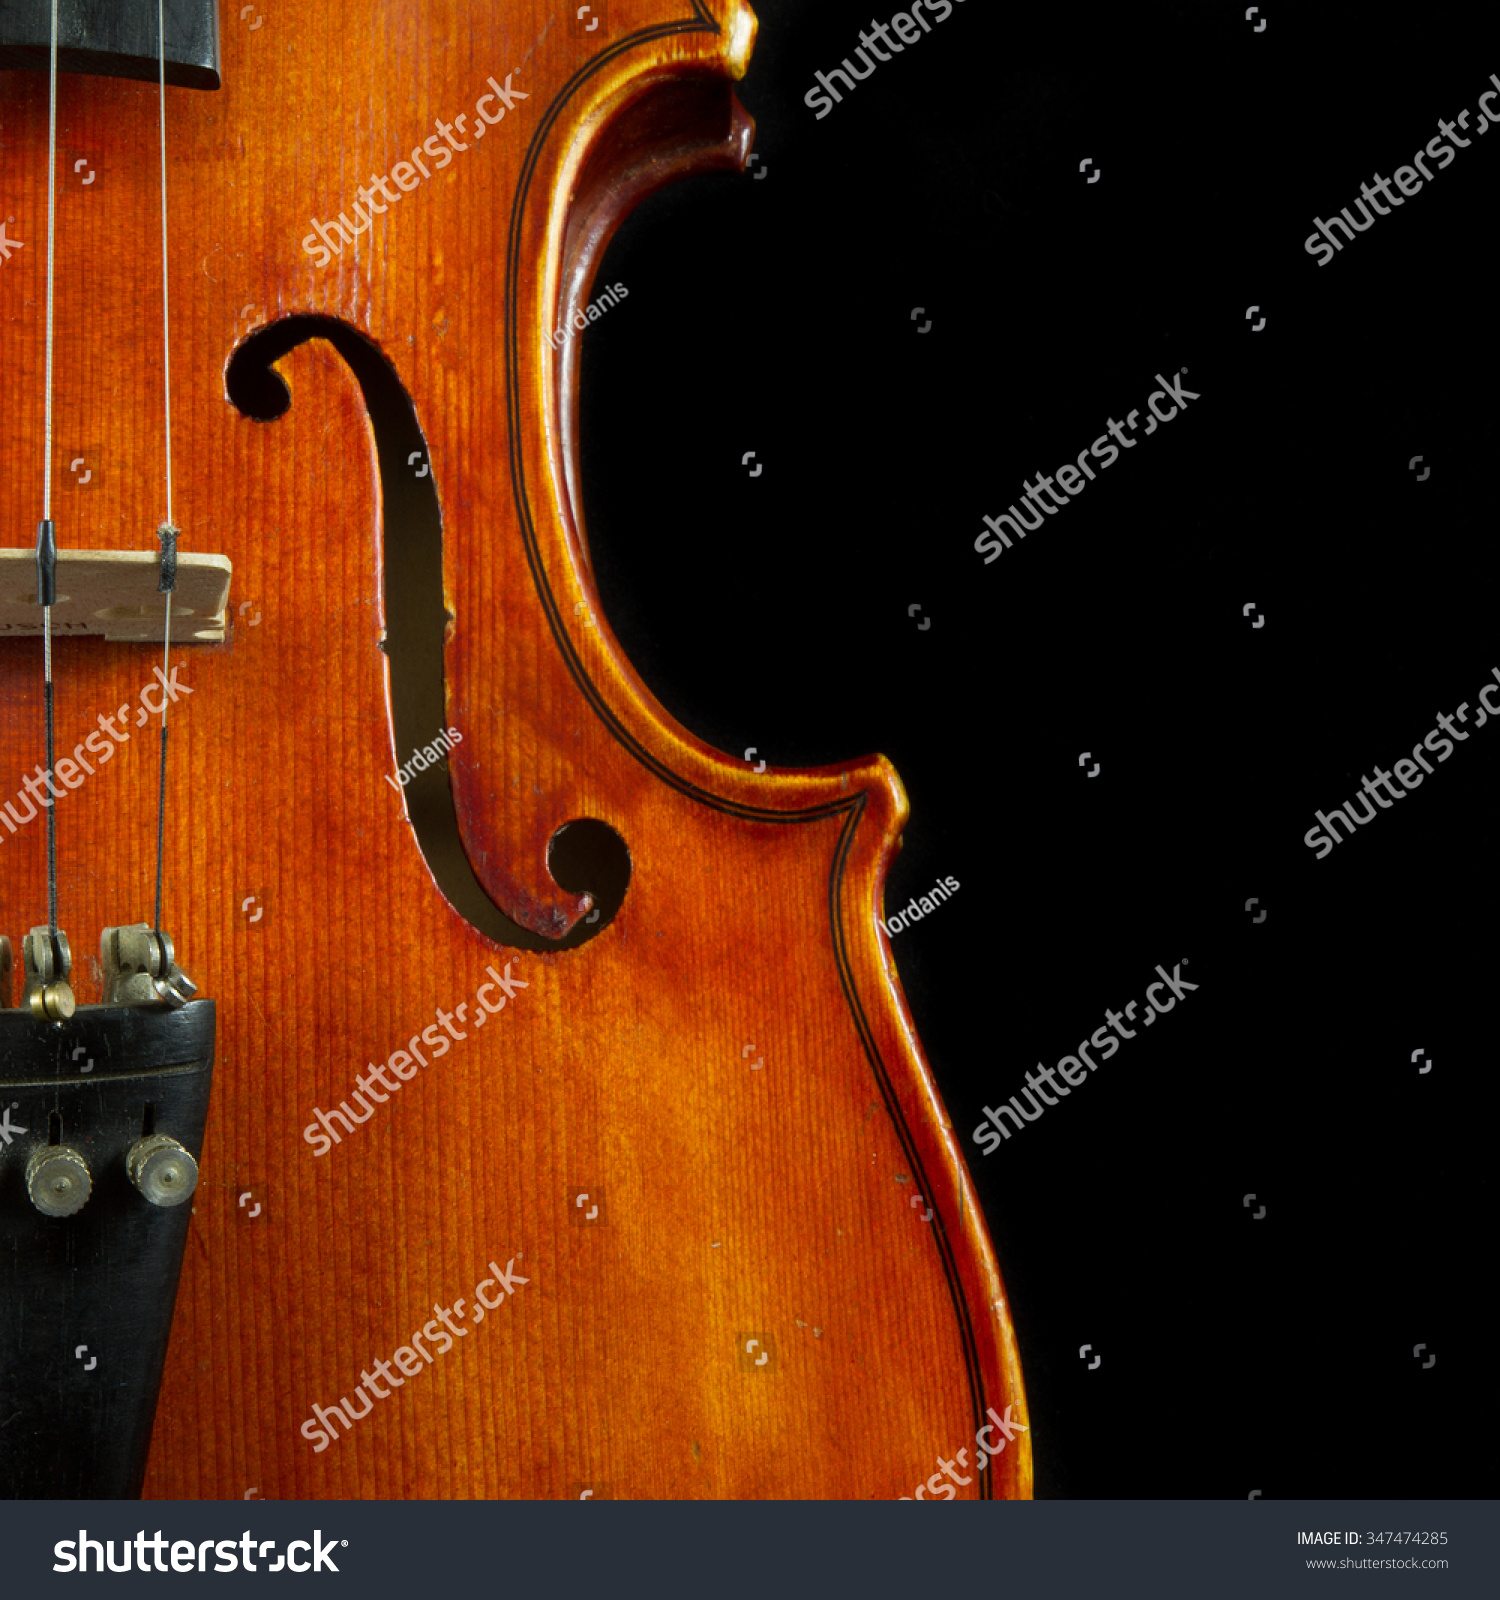 Old wood minerale interior of violin - Violin Close Up One Of A Series Of Close Up Shots Of A